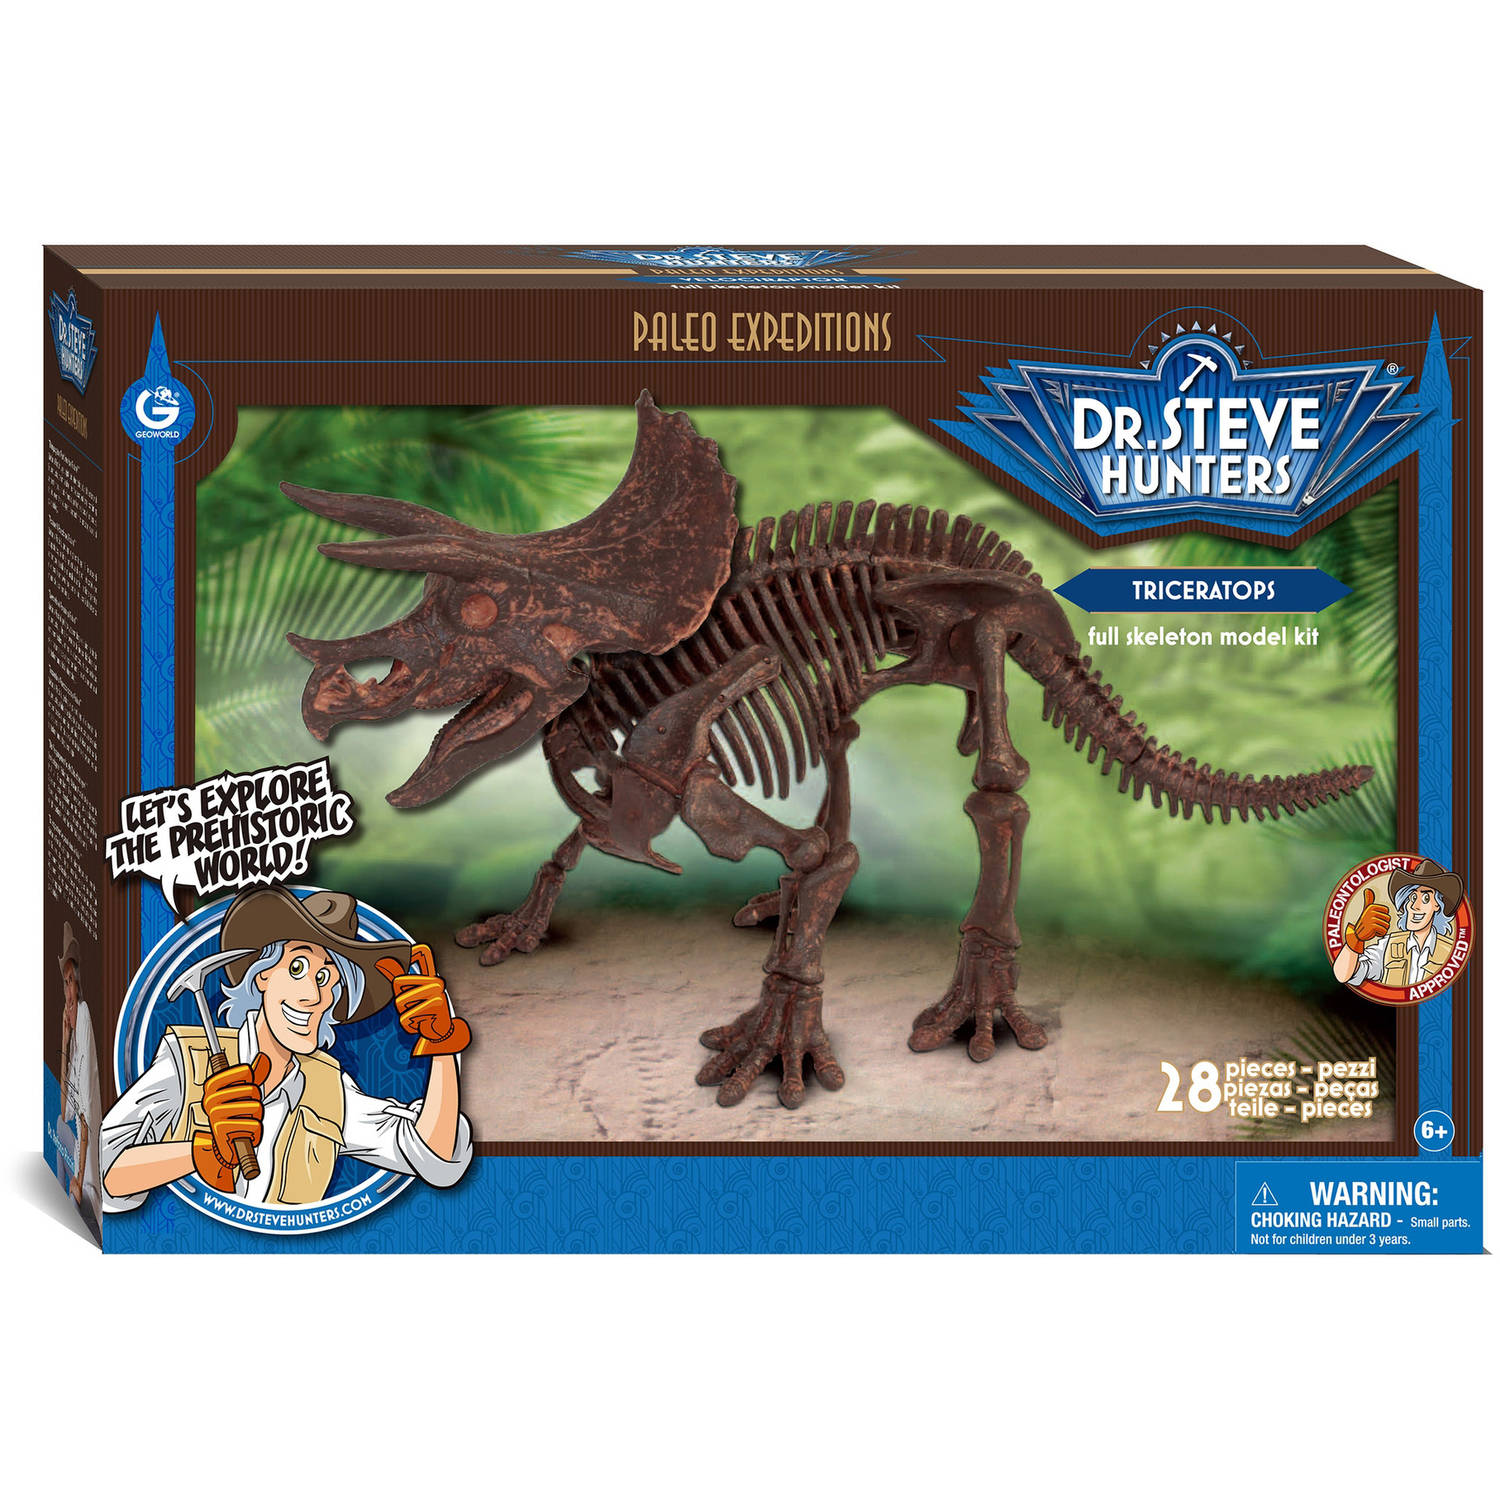 Geoworld Dr. Steve Hunters Paleo Expeditions Kit, Triceratops